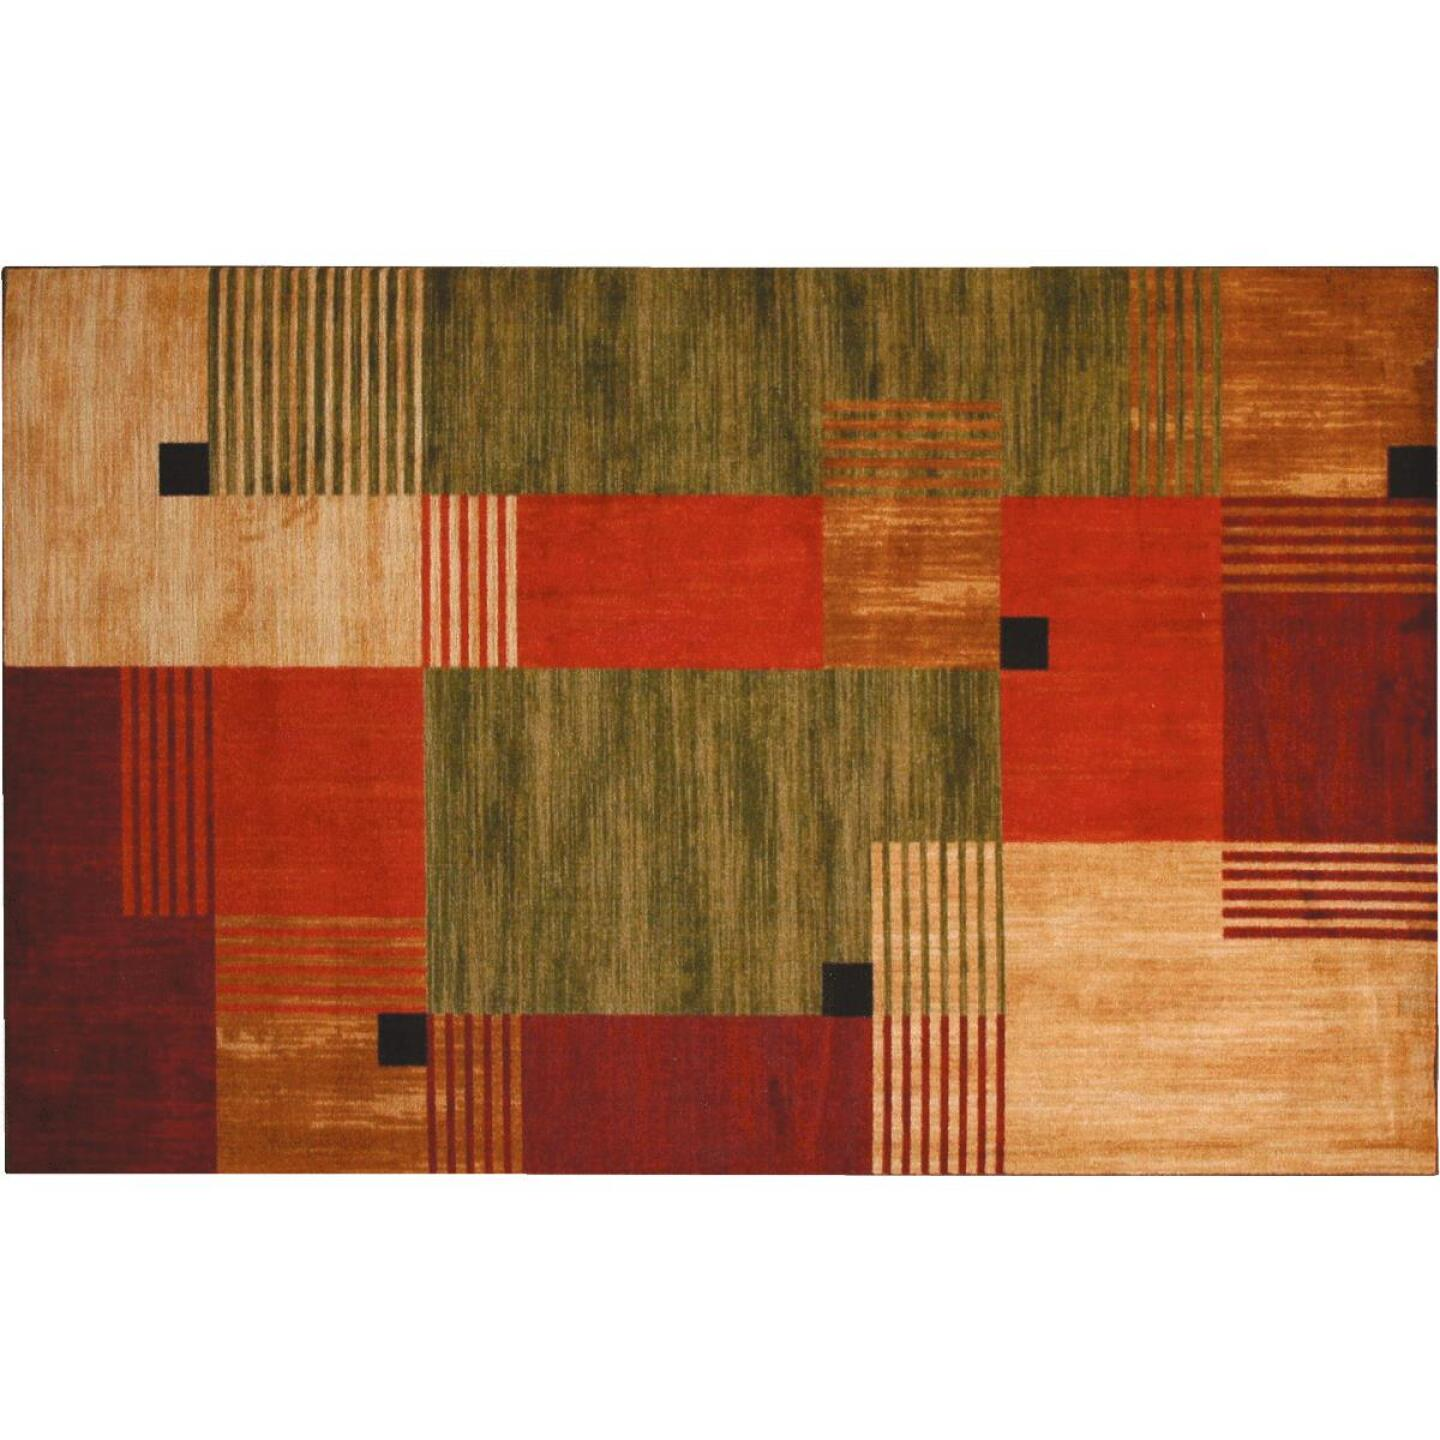 Mohawk Home Alliance Multi-Color 2 Ft. 6 In. x 3 Ft. 10 In. Accent Rug Image 1